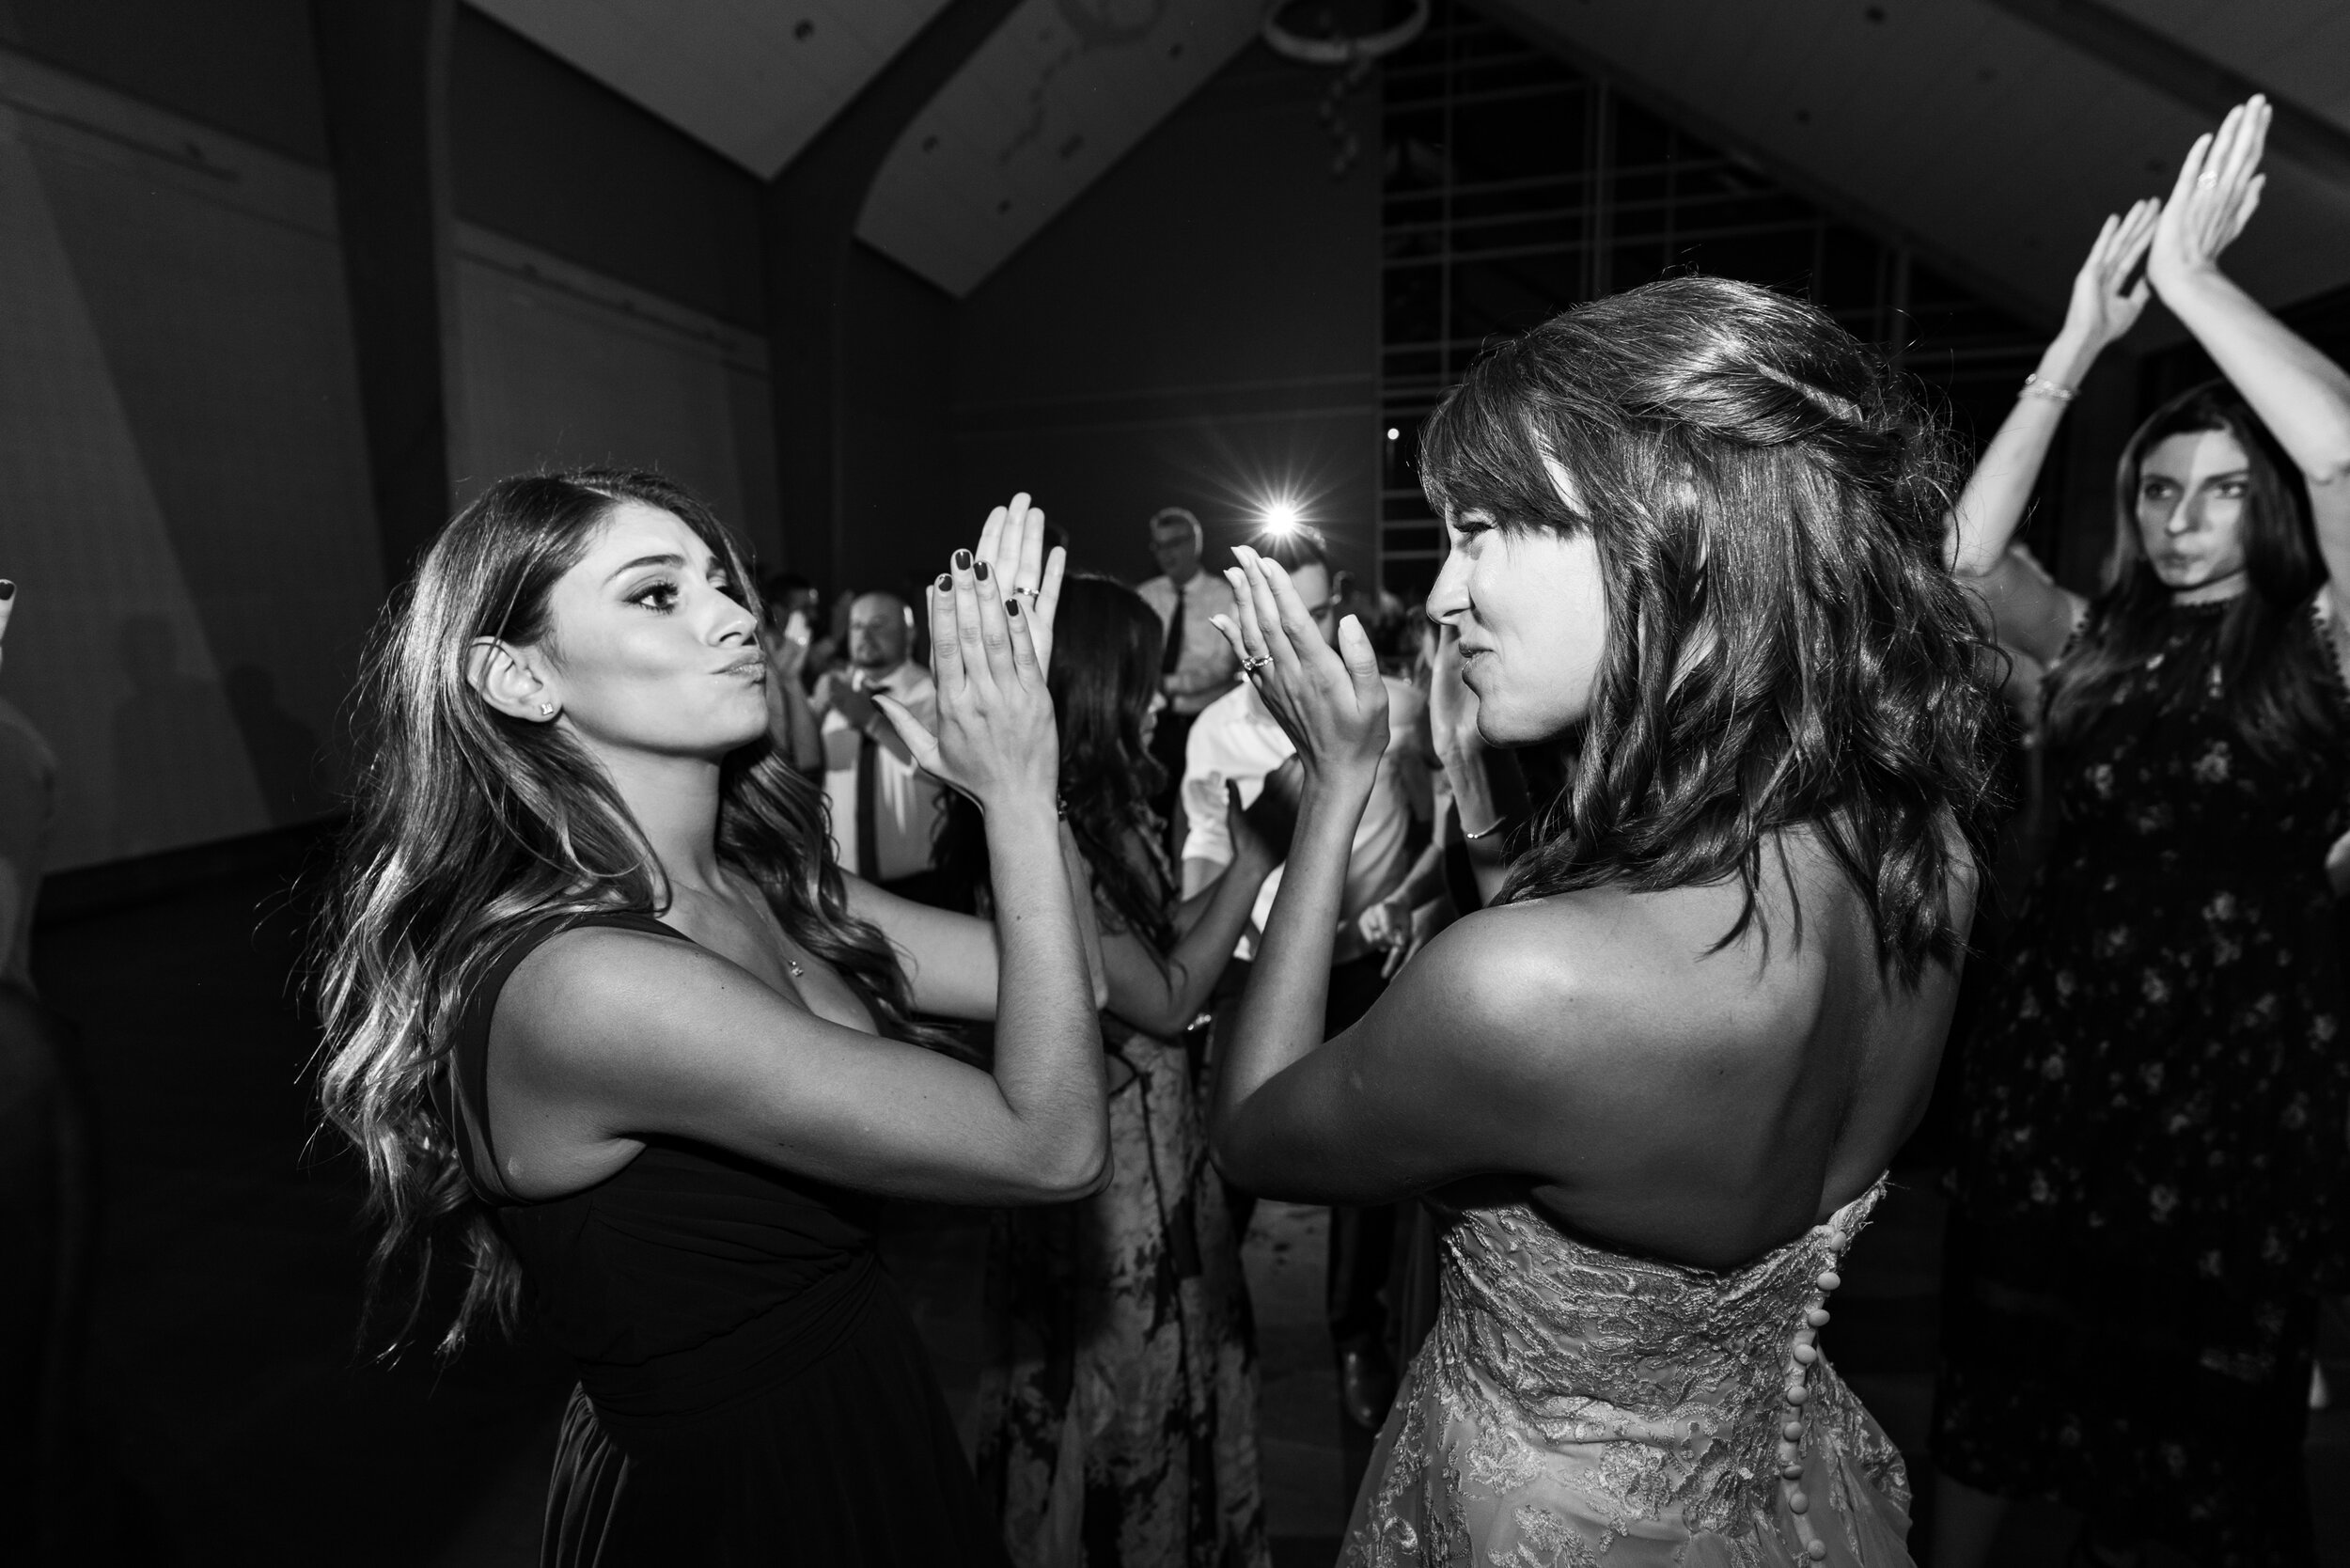 Bride and bridesmaid clapping and dancing during wedding reception